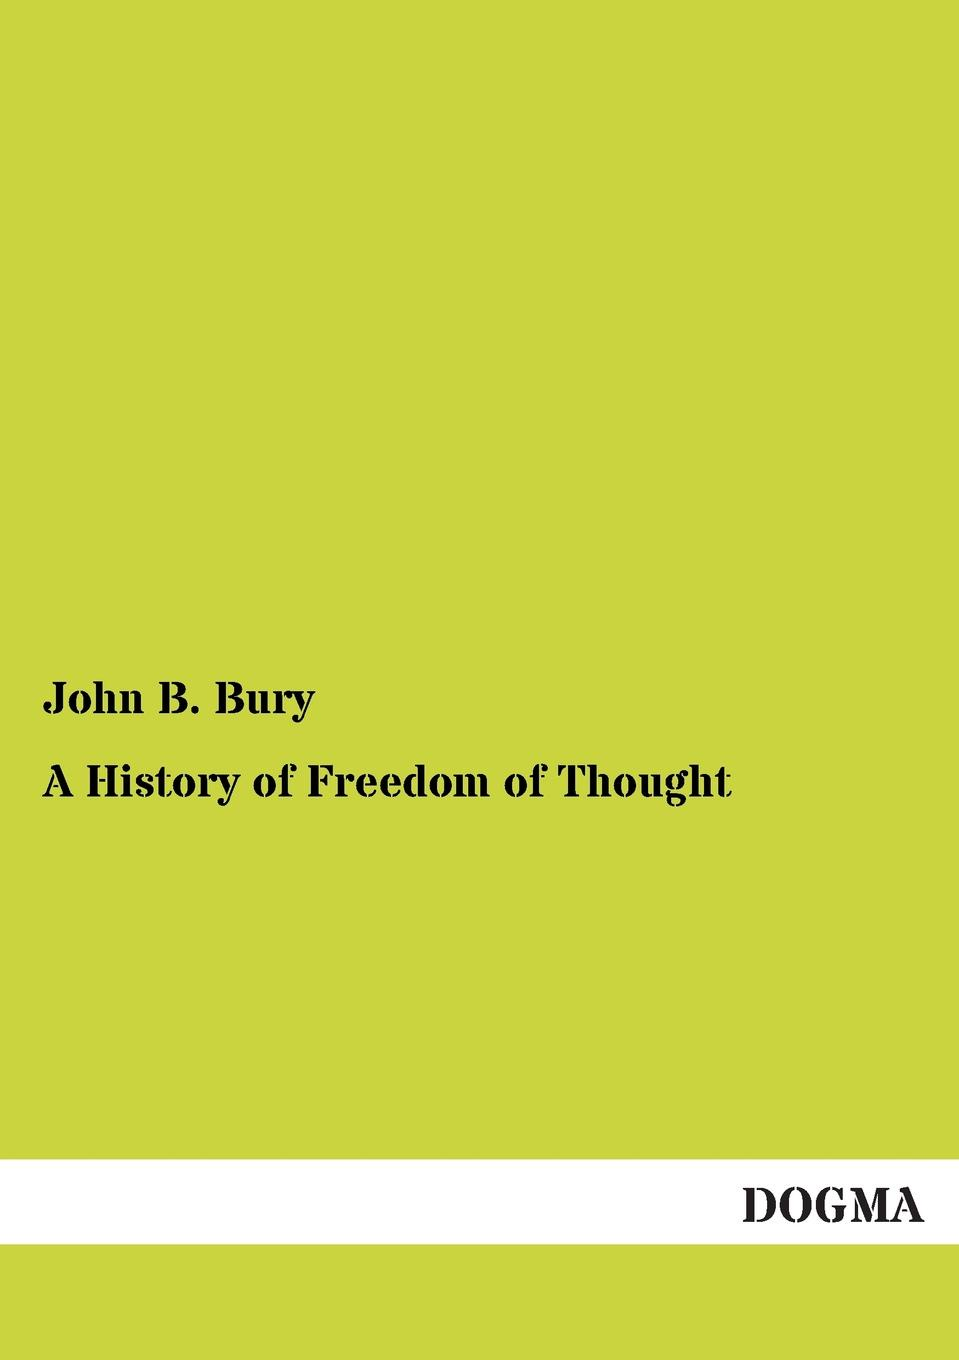 John B. Bury A History of Freedom of Thought biology of freedom